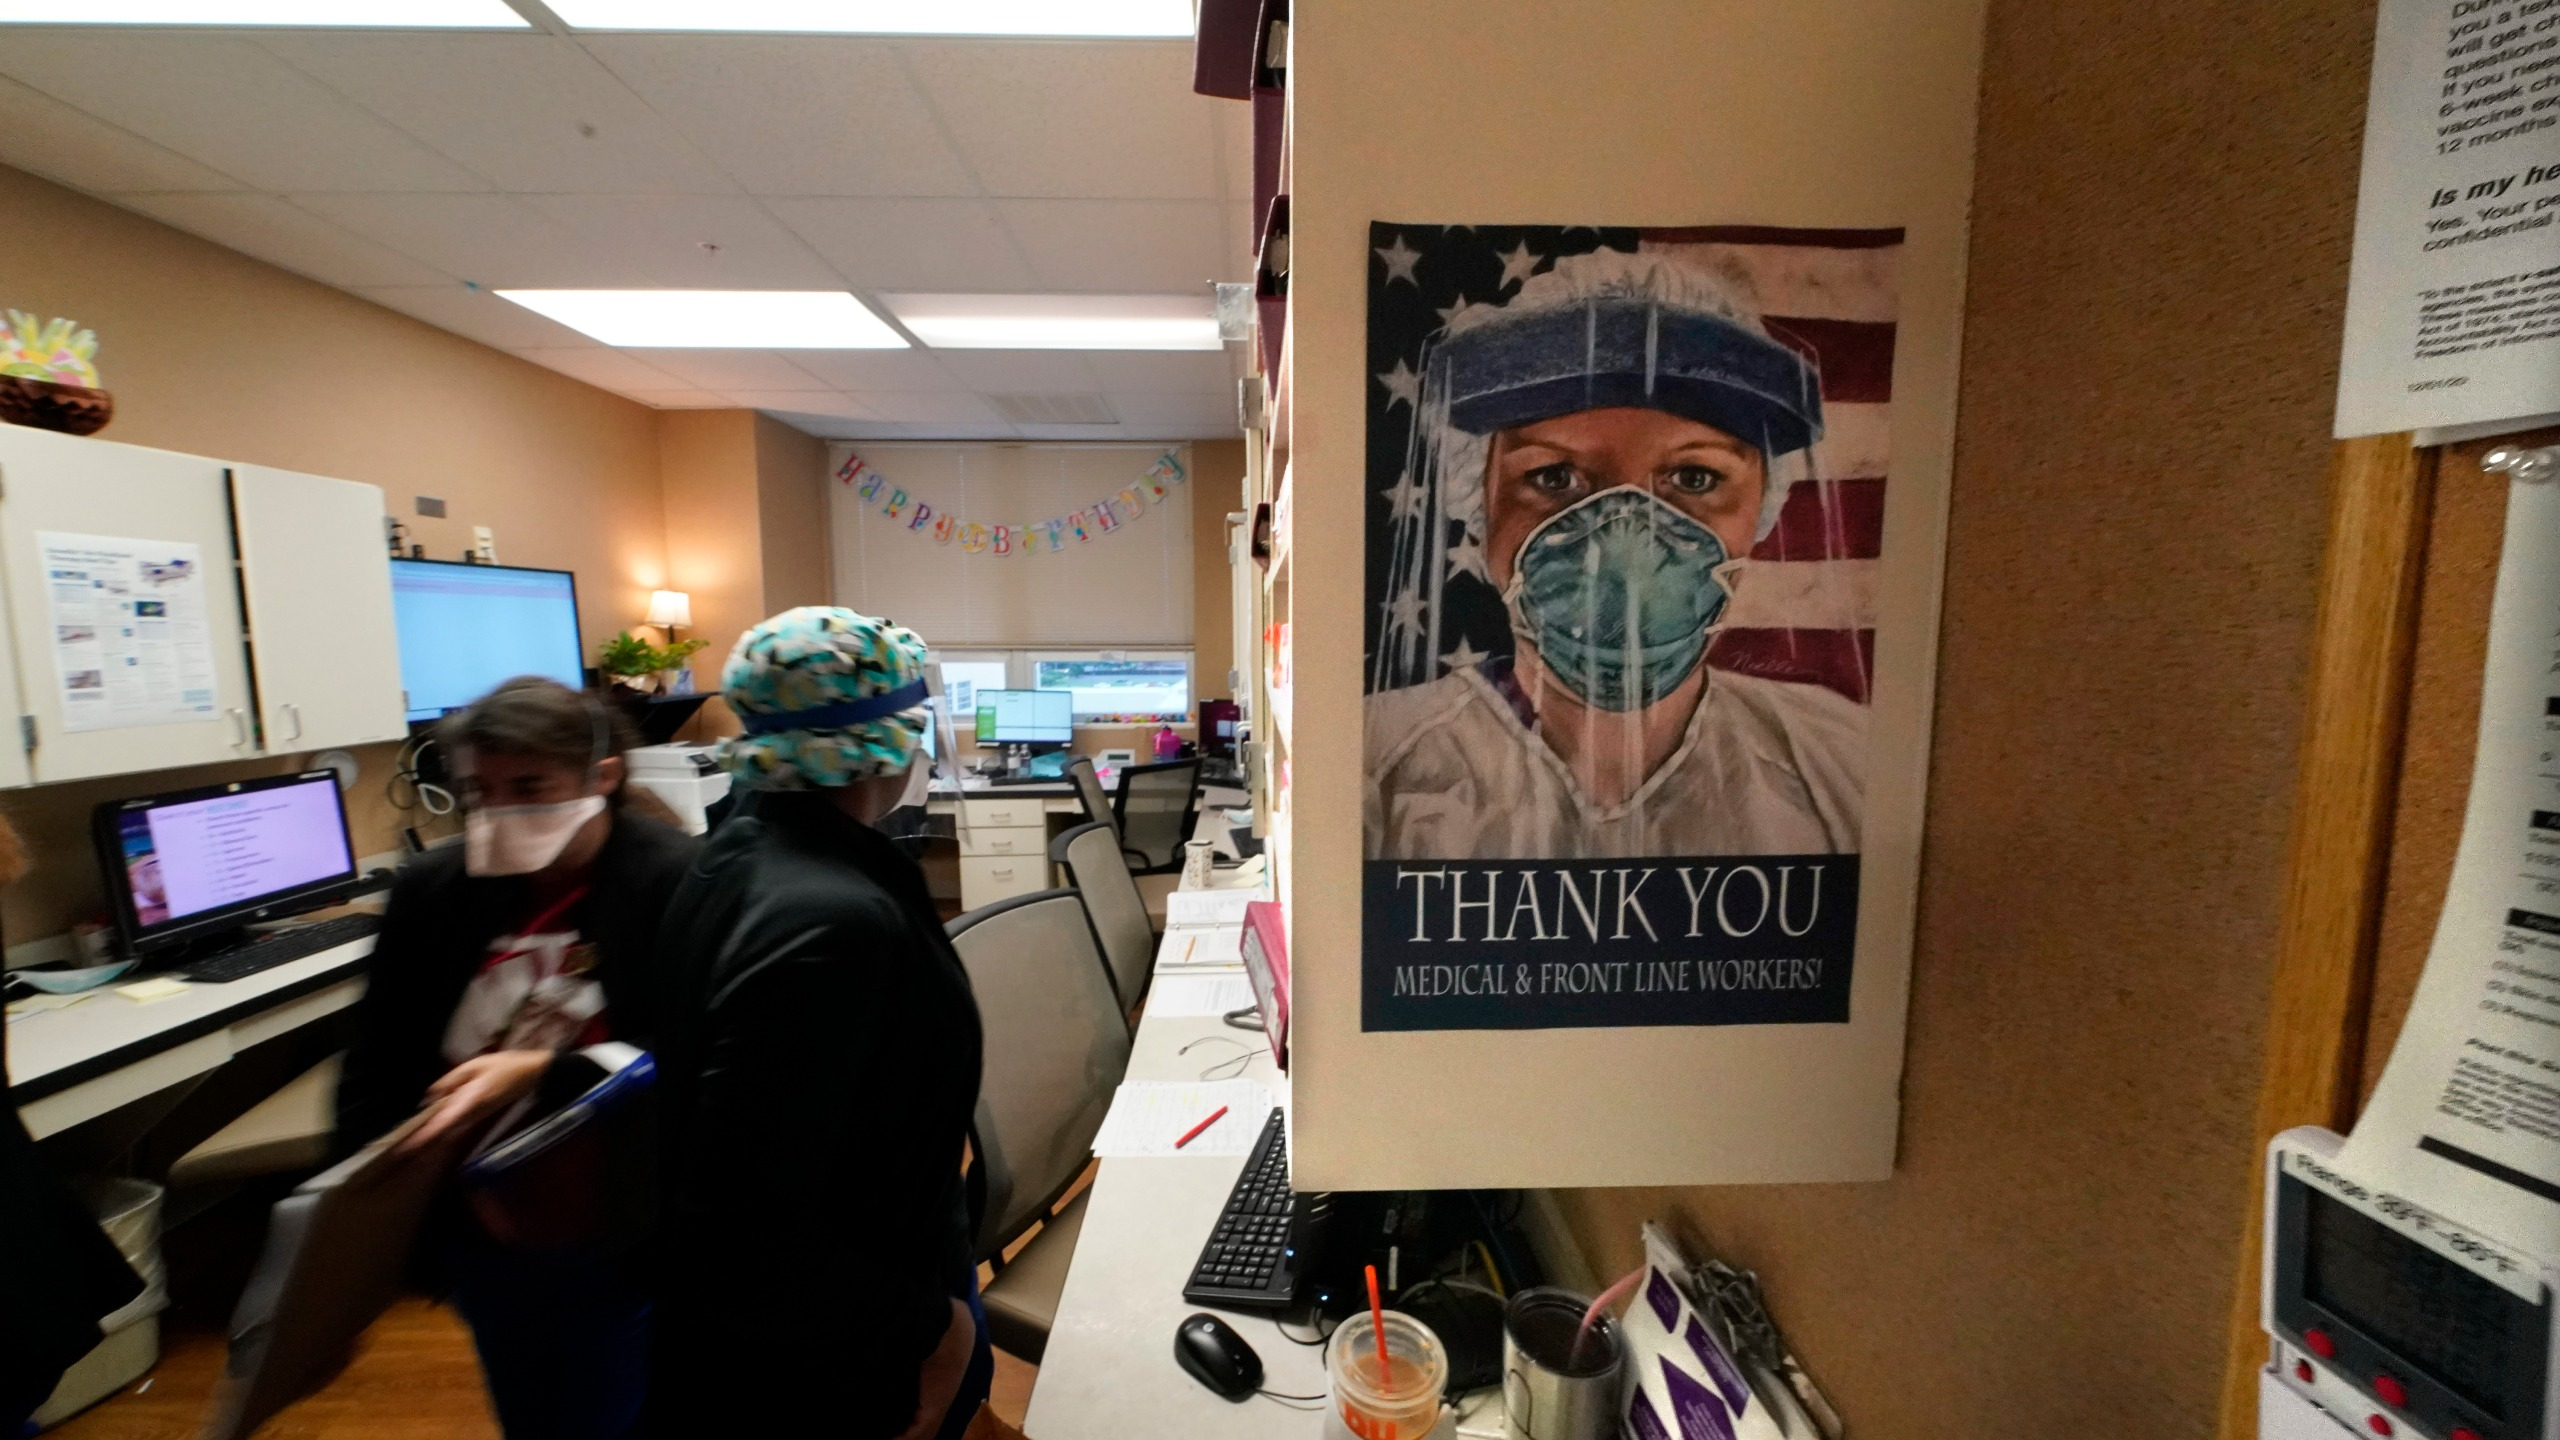 In this Aug. 18, 2021, file photo, a poster honoring medical and frontline workers, hangs on a nursing station of an intensive care unit, at the Willis-Knighton Medical Center in Shreveport, La. (AP Photo/Gerald Herbert, File)